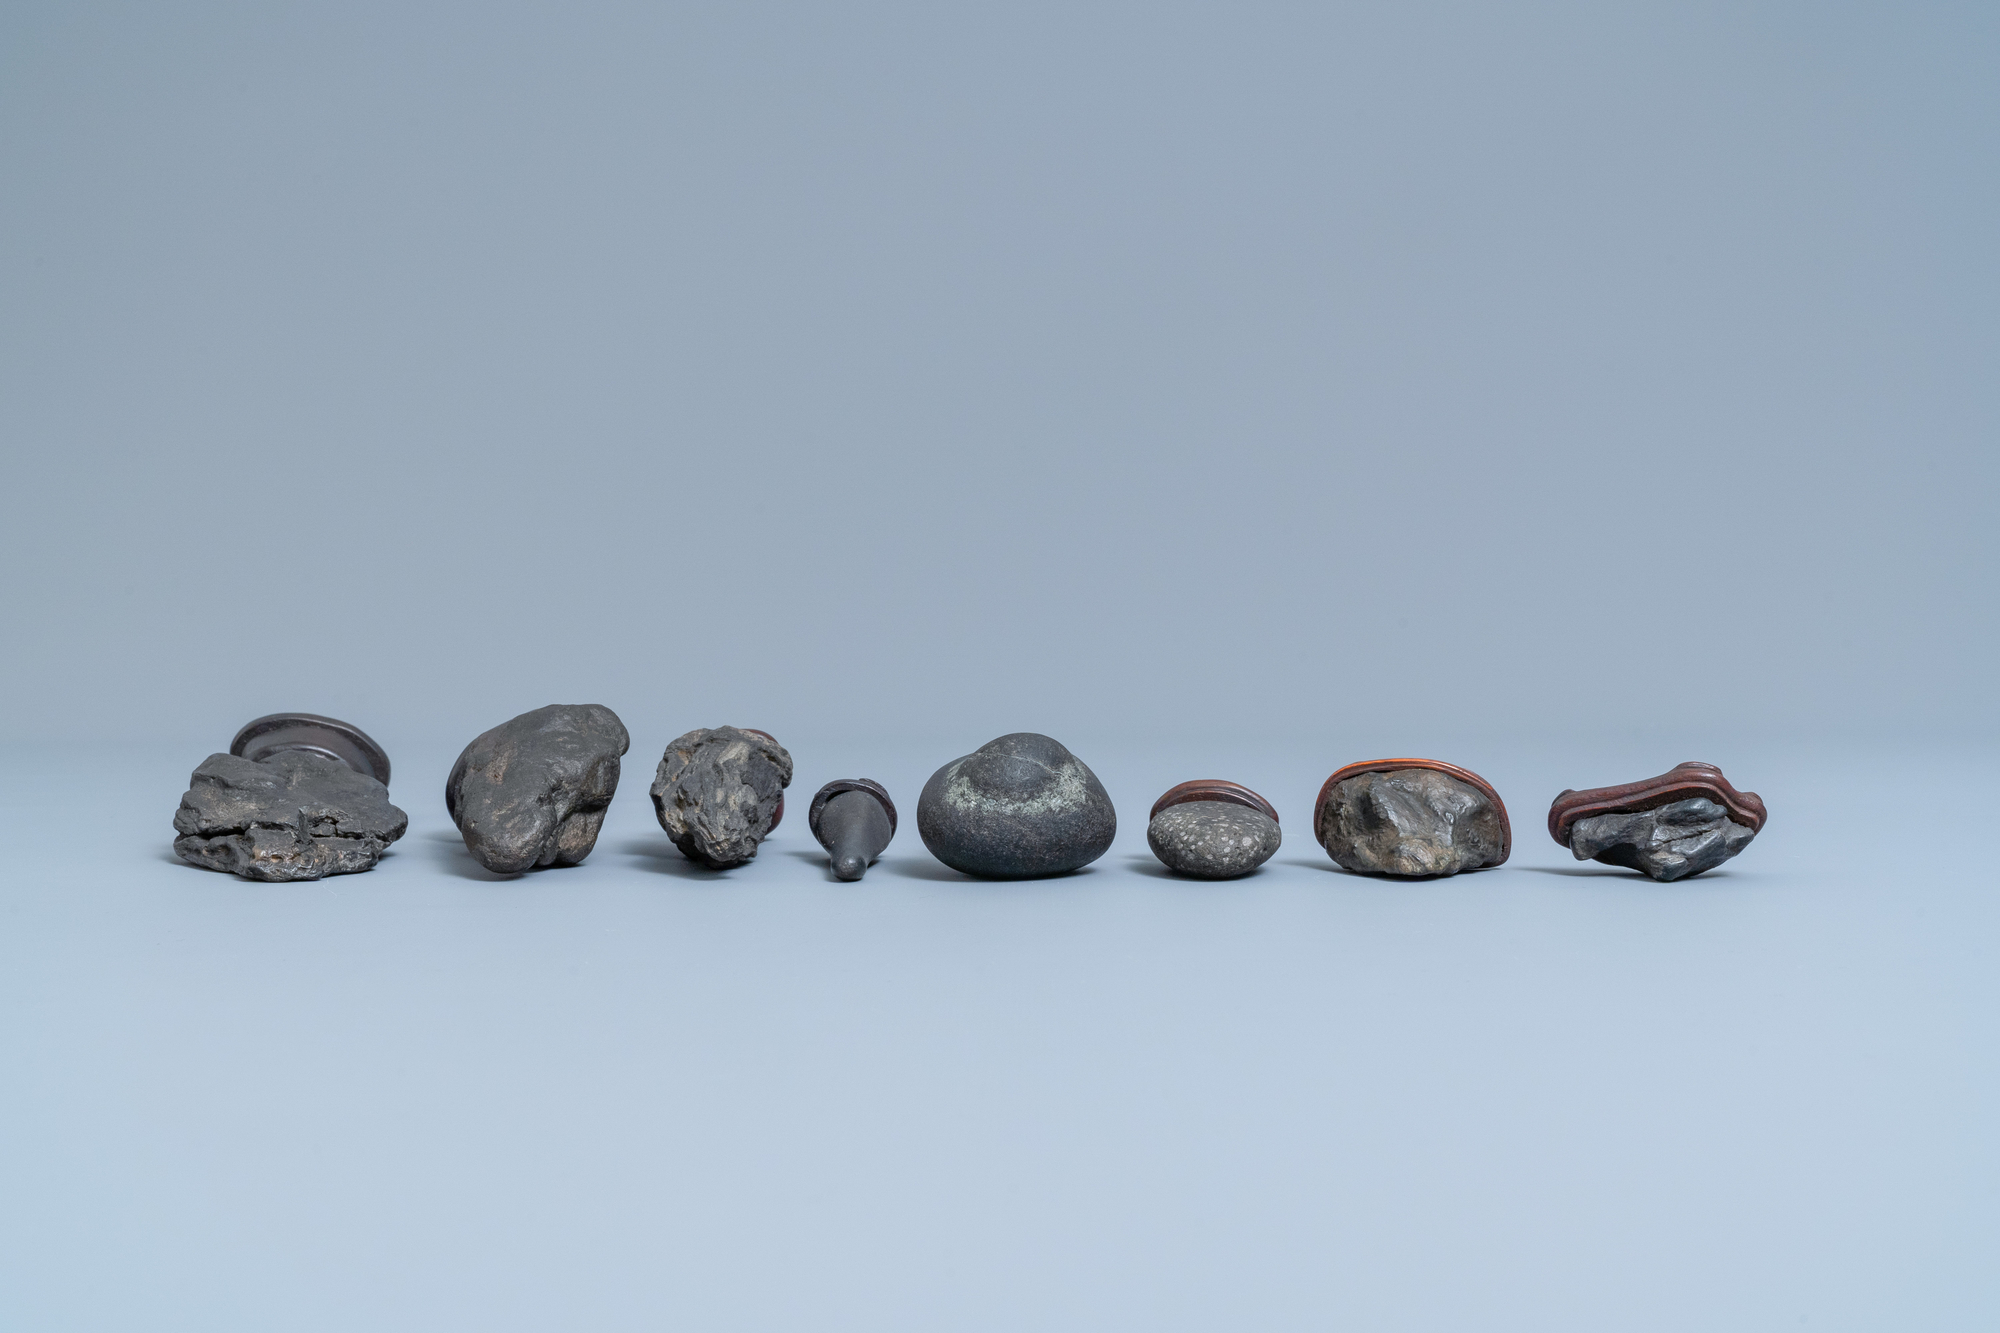 Eight Chinese scholar's rocks on wooden stands, 19/20th C. - Image 6 of 7